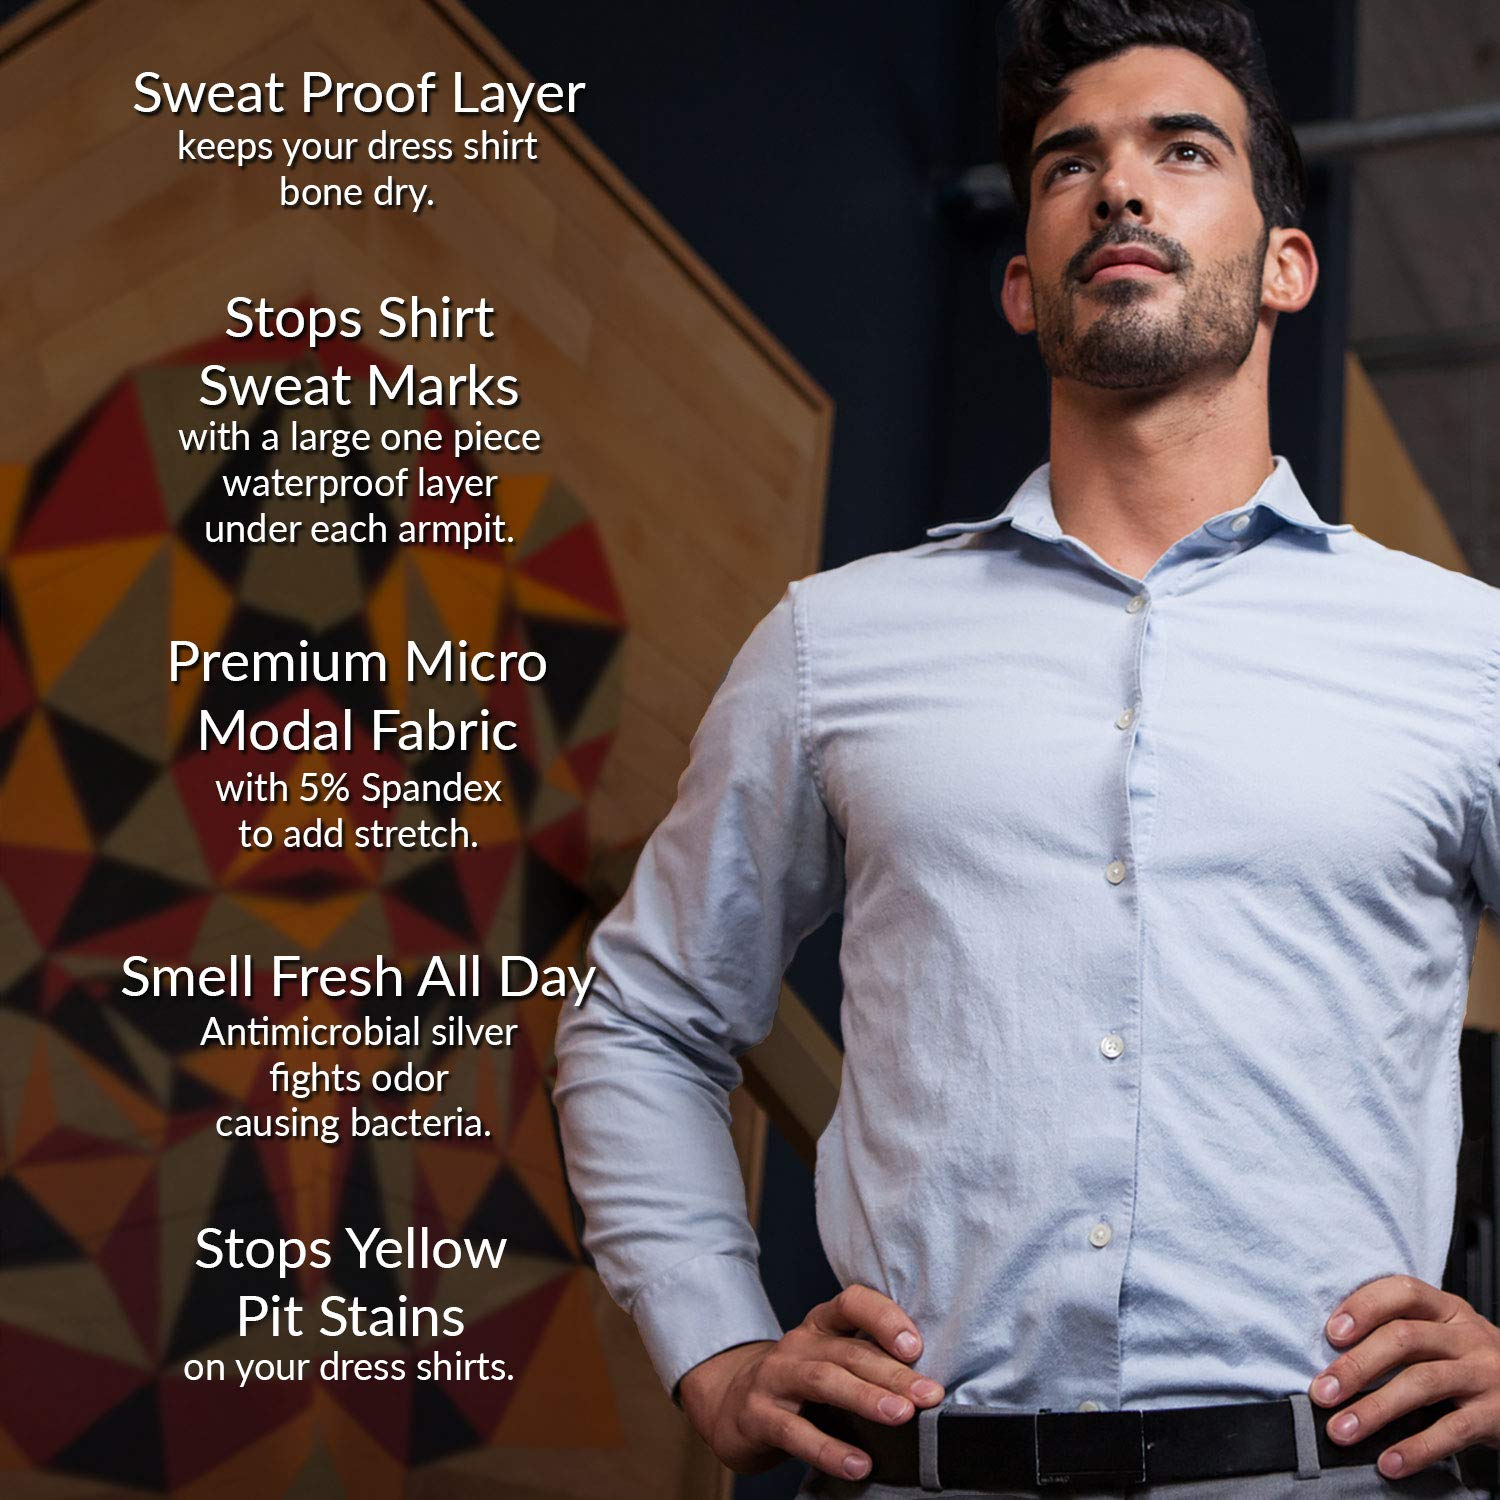 Ejis Sweat Proof Undershirt Men Wsweat Pads Antimicrobial Silver